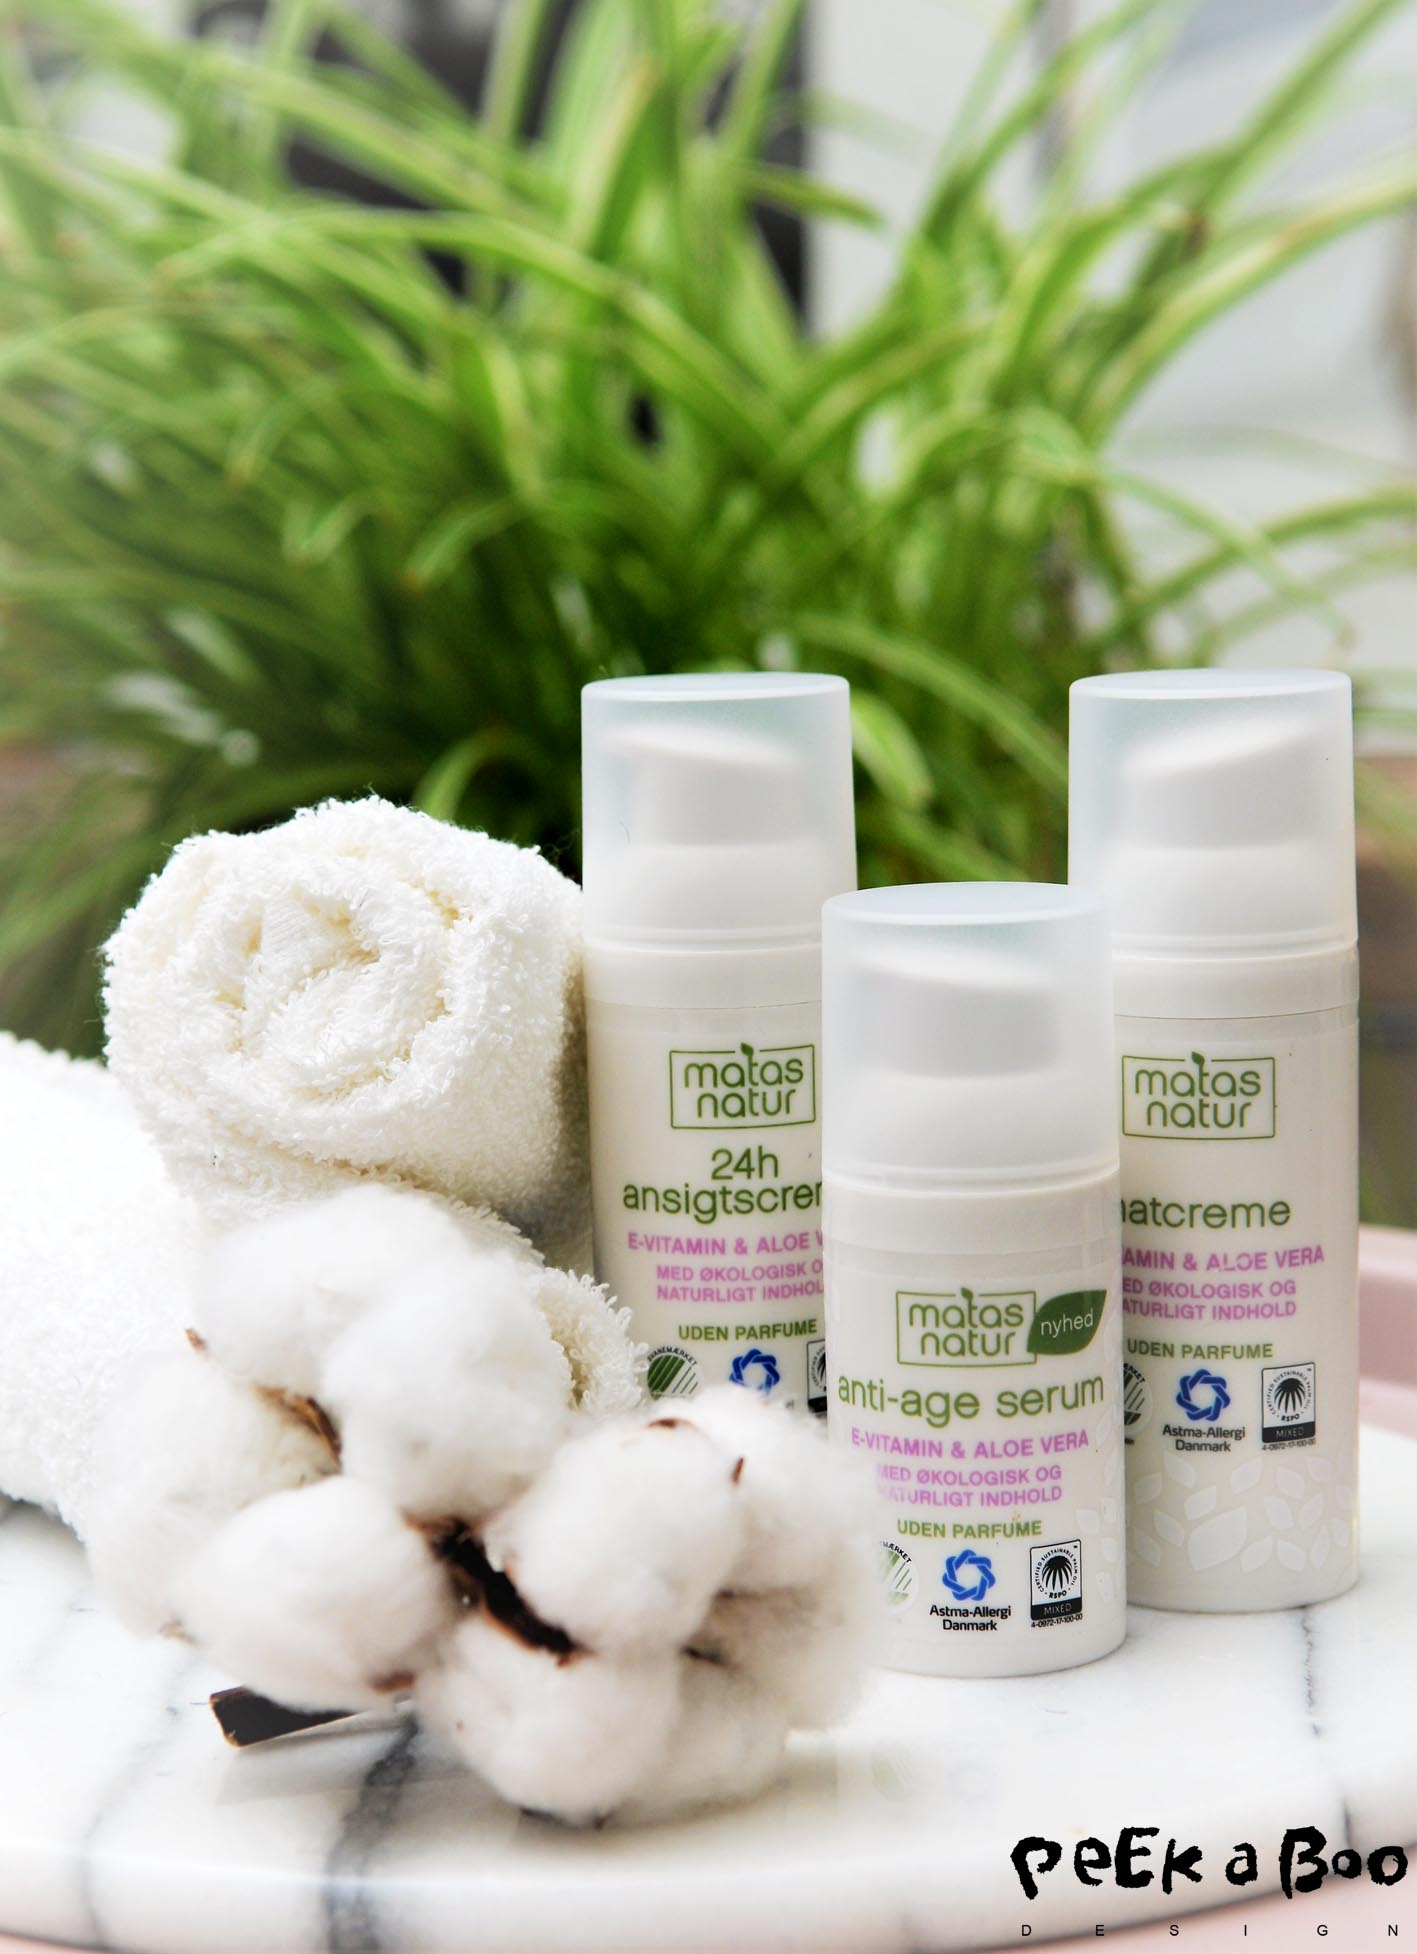 The new organic line from Matas Natur for my facial daily routine. I have the anti-age serum and 24 hour face creme both with vitamine E and Aloe Vera.